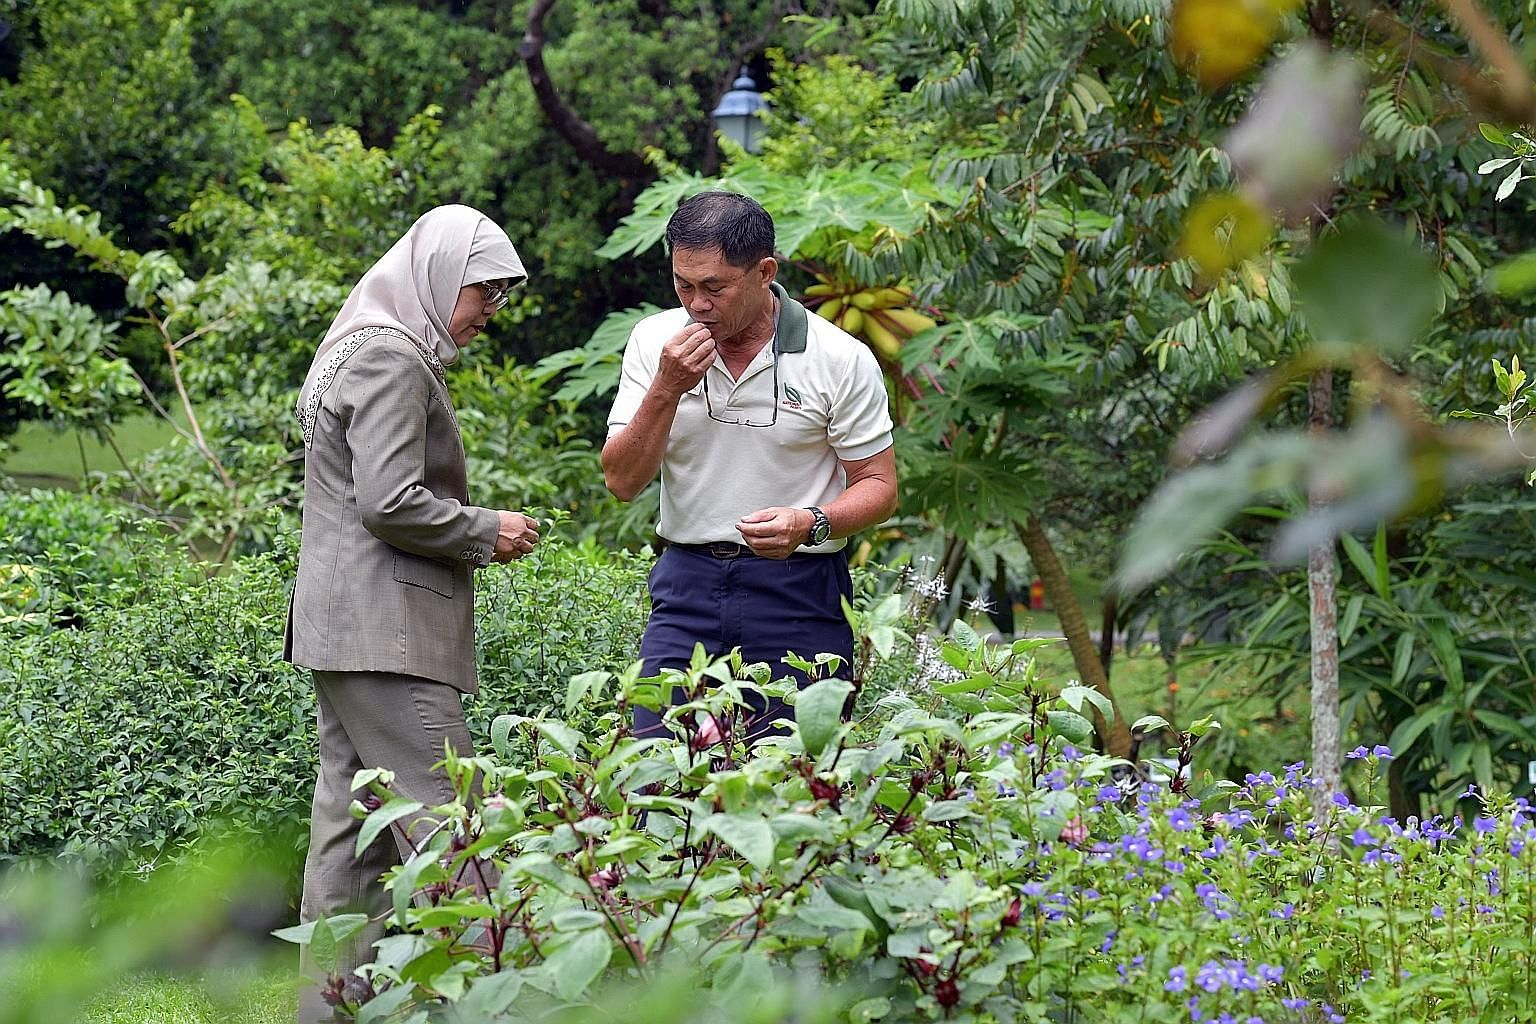 In a photo taken on Sept 14, 2017, Mr Wong Tuan Wah, National Parks Board's group director for Fort Canning Park and the Istana, is seen with President Halimah Yacob in the gardens of the Istana.